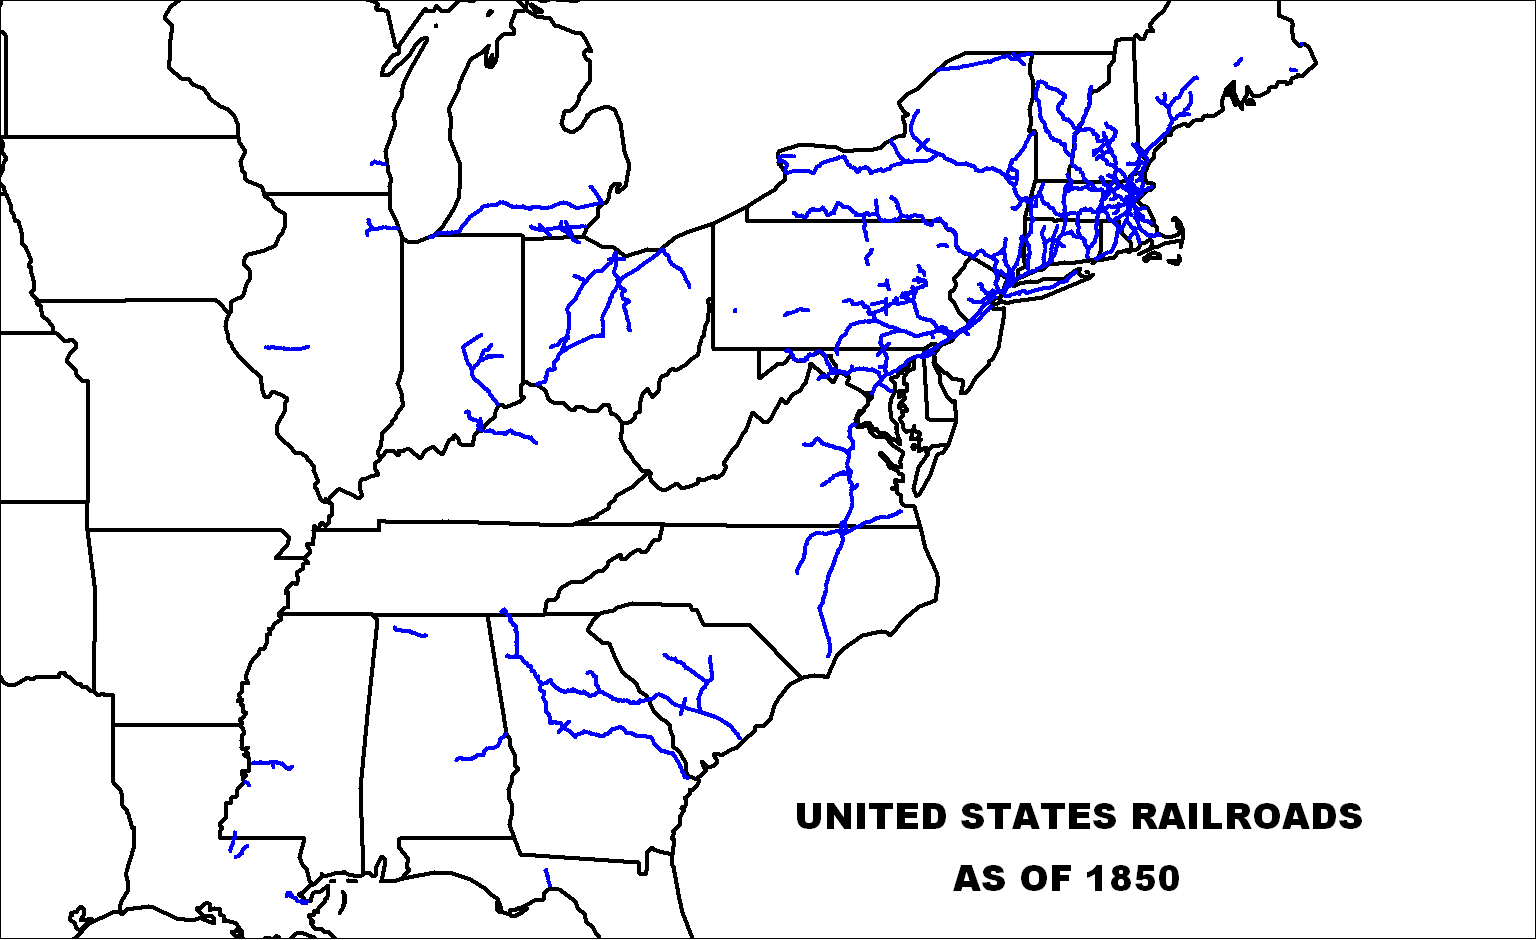 US Railroads Map as of 1850